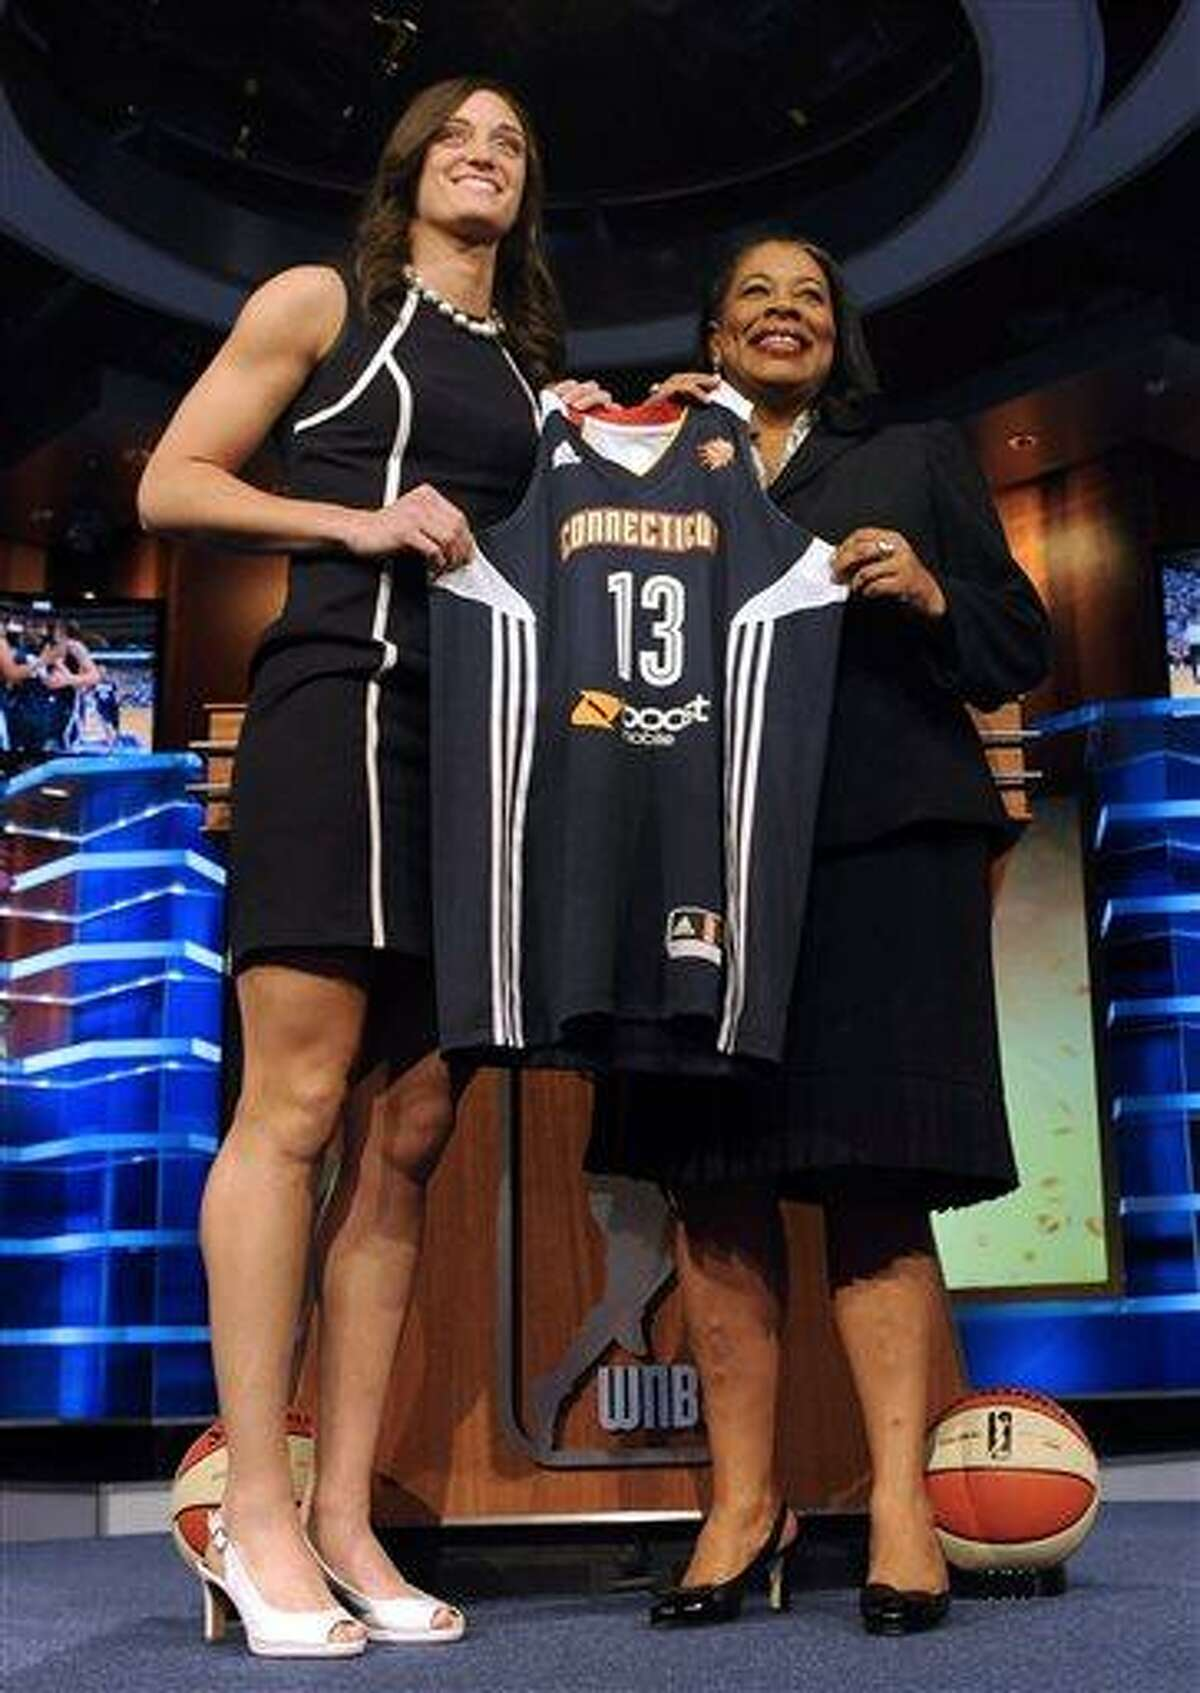 Connecticut's Kelly Faris holds up a Connecticut Sun jersey with WNBA president Laurel J. Richie after Connecticut selected Faris as the No. 11 pick in the WNBA basketball draft in Bristol, Conn., Monday, April 15, 2013. (AP Photo/Jessica Hill)